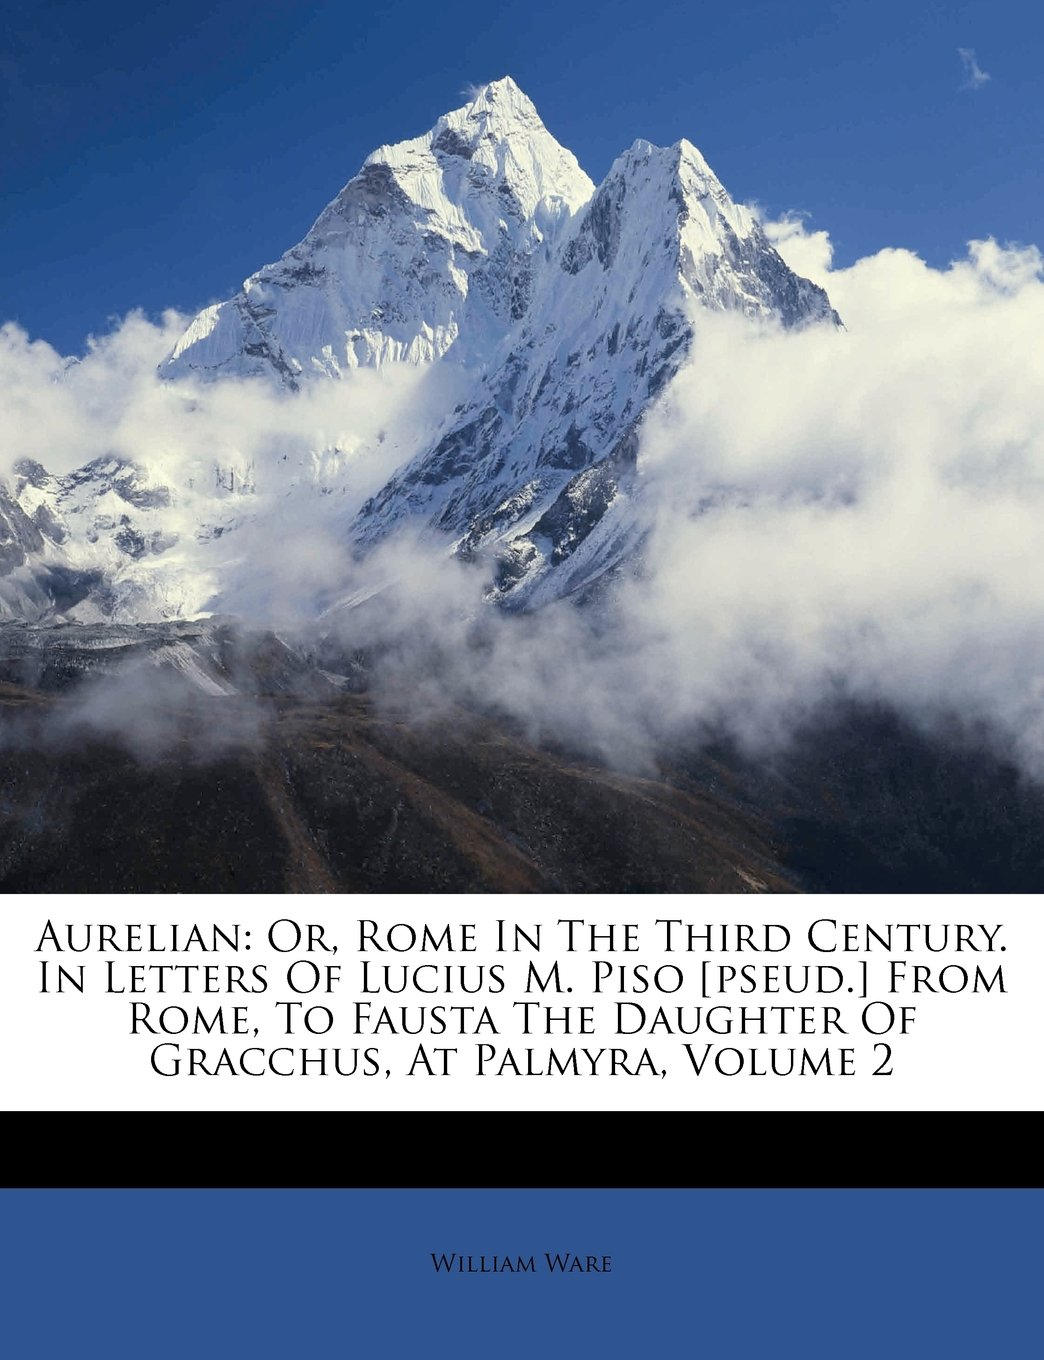 Download Aurelian: Or, Rome In The Third Century. In Letters Of Lucius M. Piso [pseud.] From Rome, To Fausta The Daughter Of Gracchus, At Palmyra, Volume 2 pdf epub